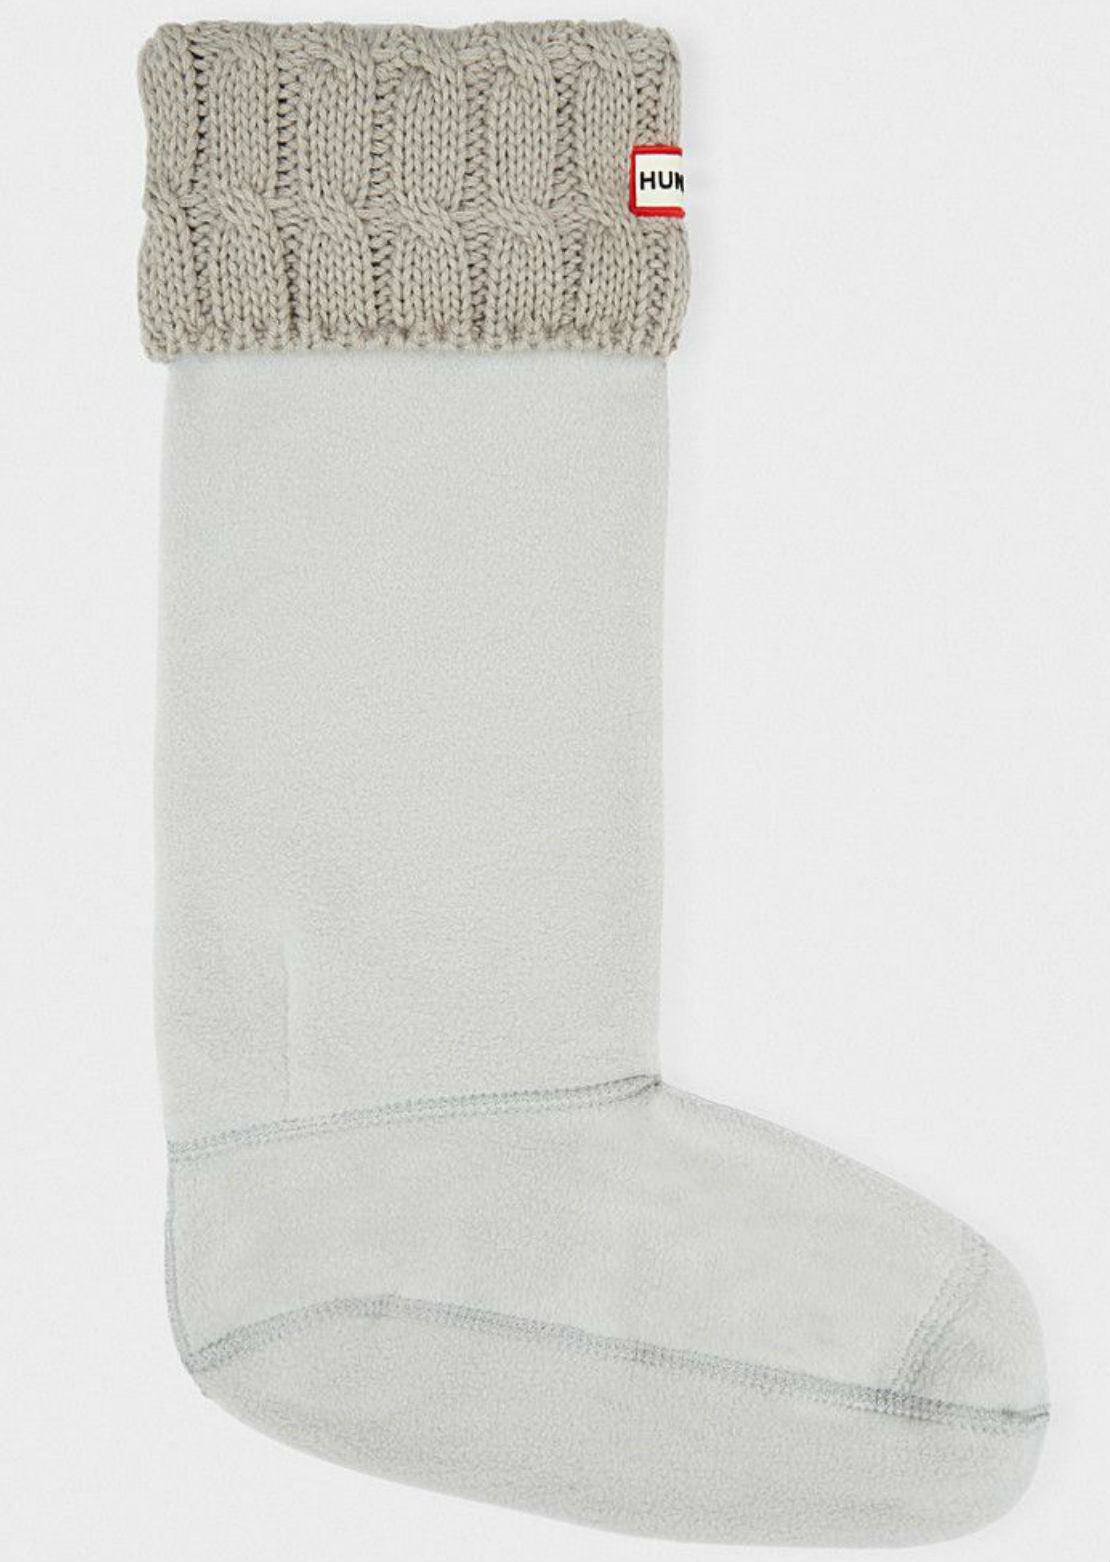 Hunter Women's Original Short 6 Stitch Cable Cuff Socks